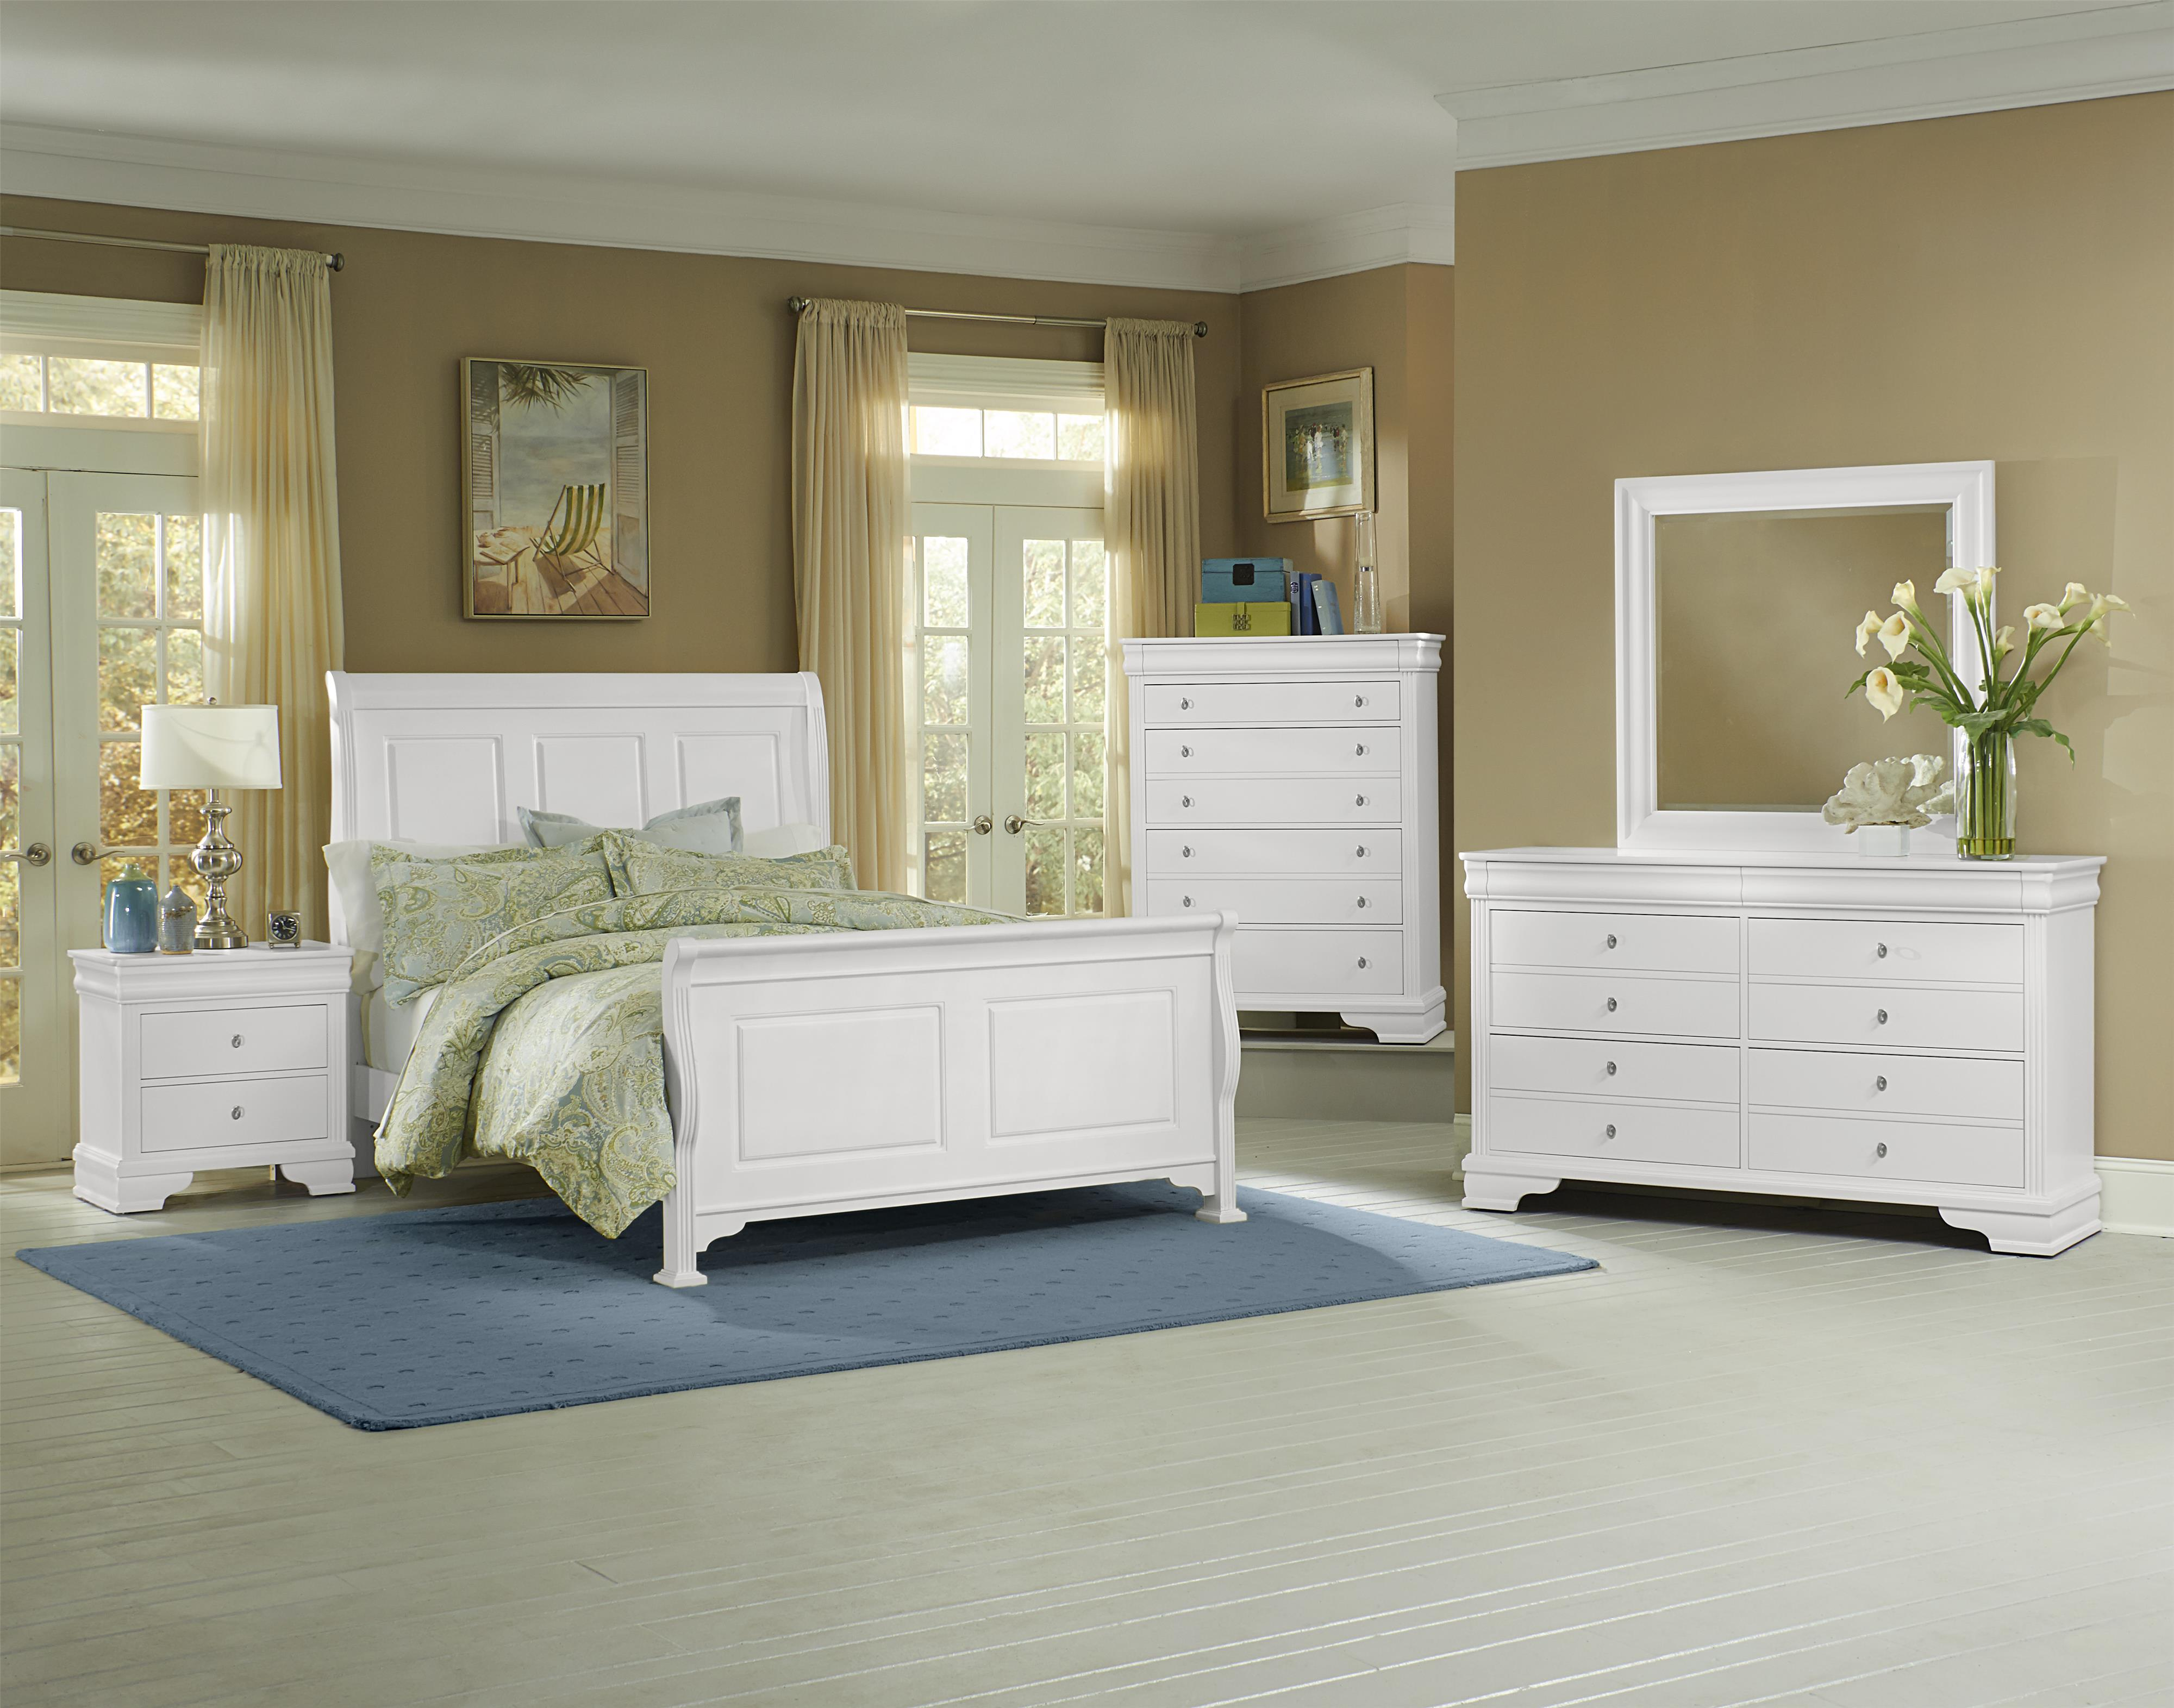 Vaughan Bassett French Market King Bedroom Group - Item Number: 384 K Bedroom Group 2